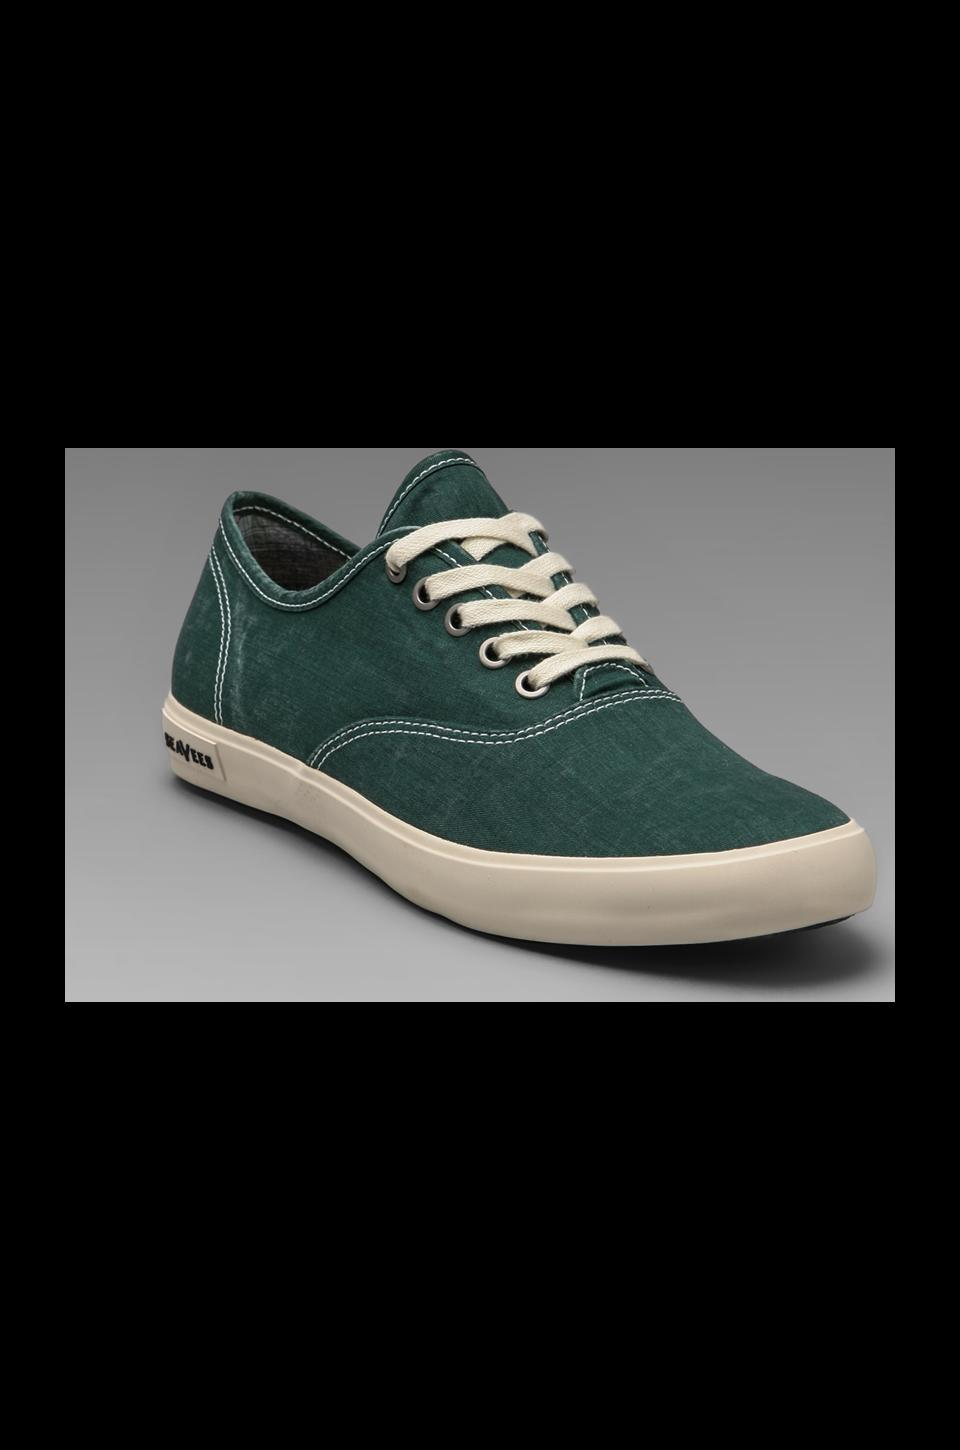 SeaVees Circular Vamp Oxford in Ceramic Green